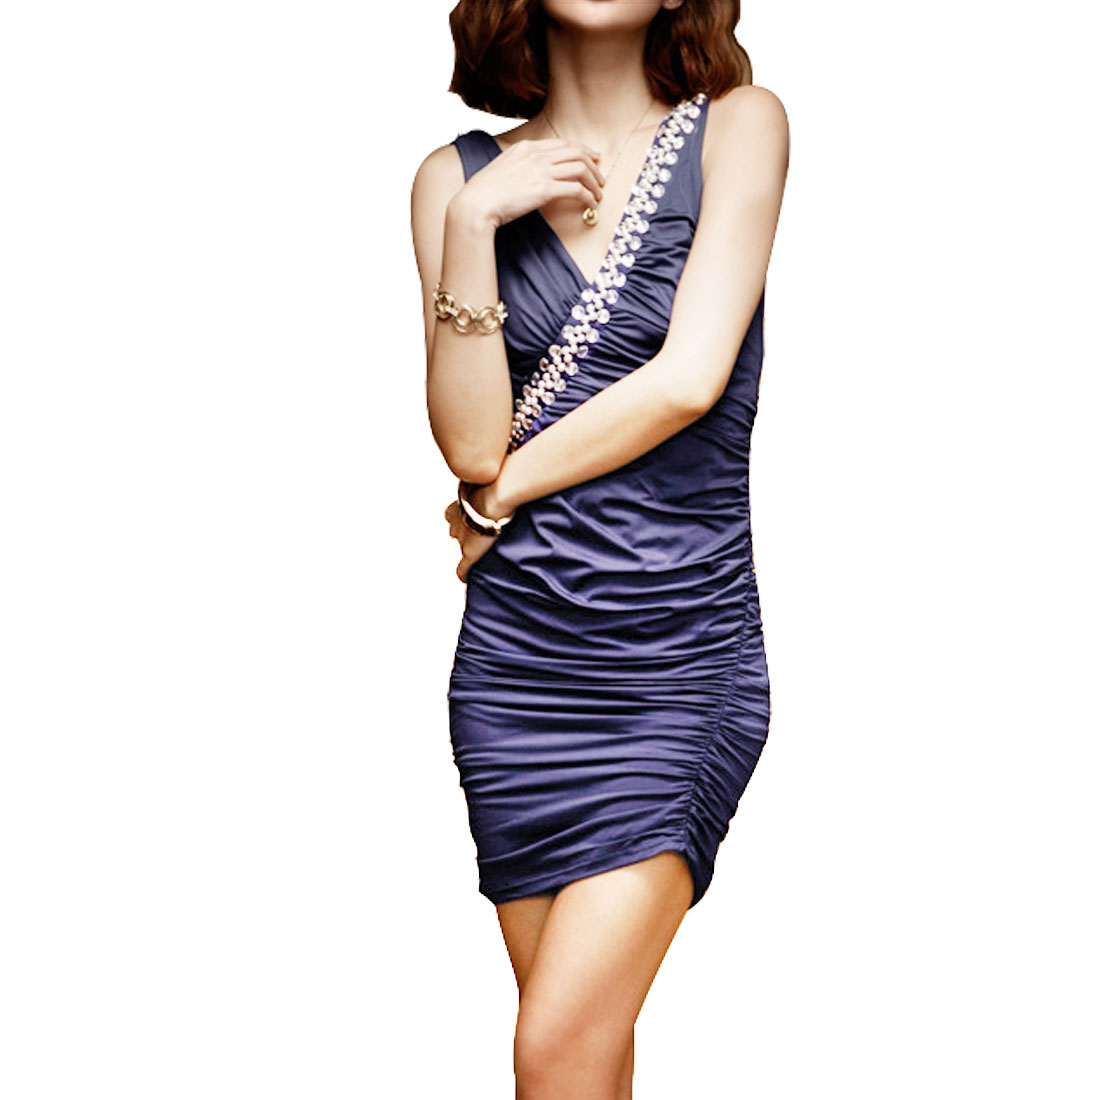 Women Formfitting Sapphire Blue Plastic Crystal Accent Ruched Side Mini Dress S